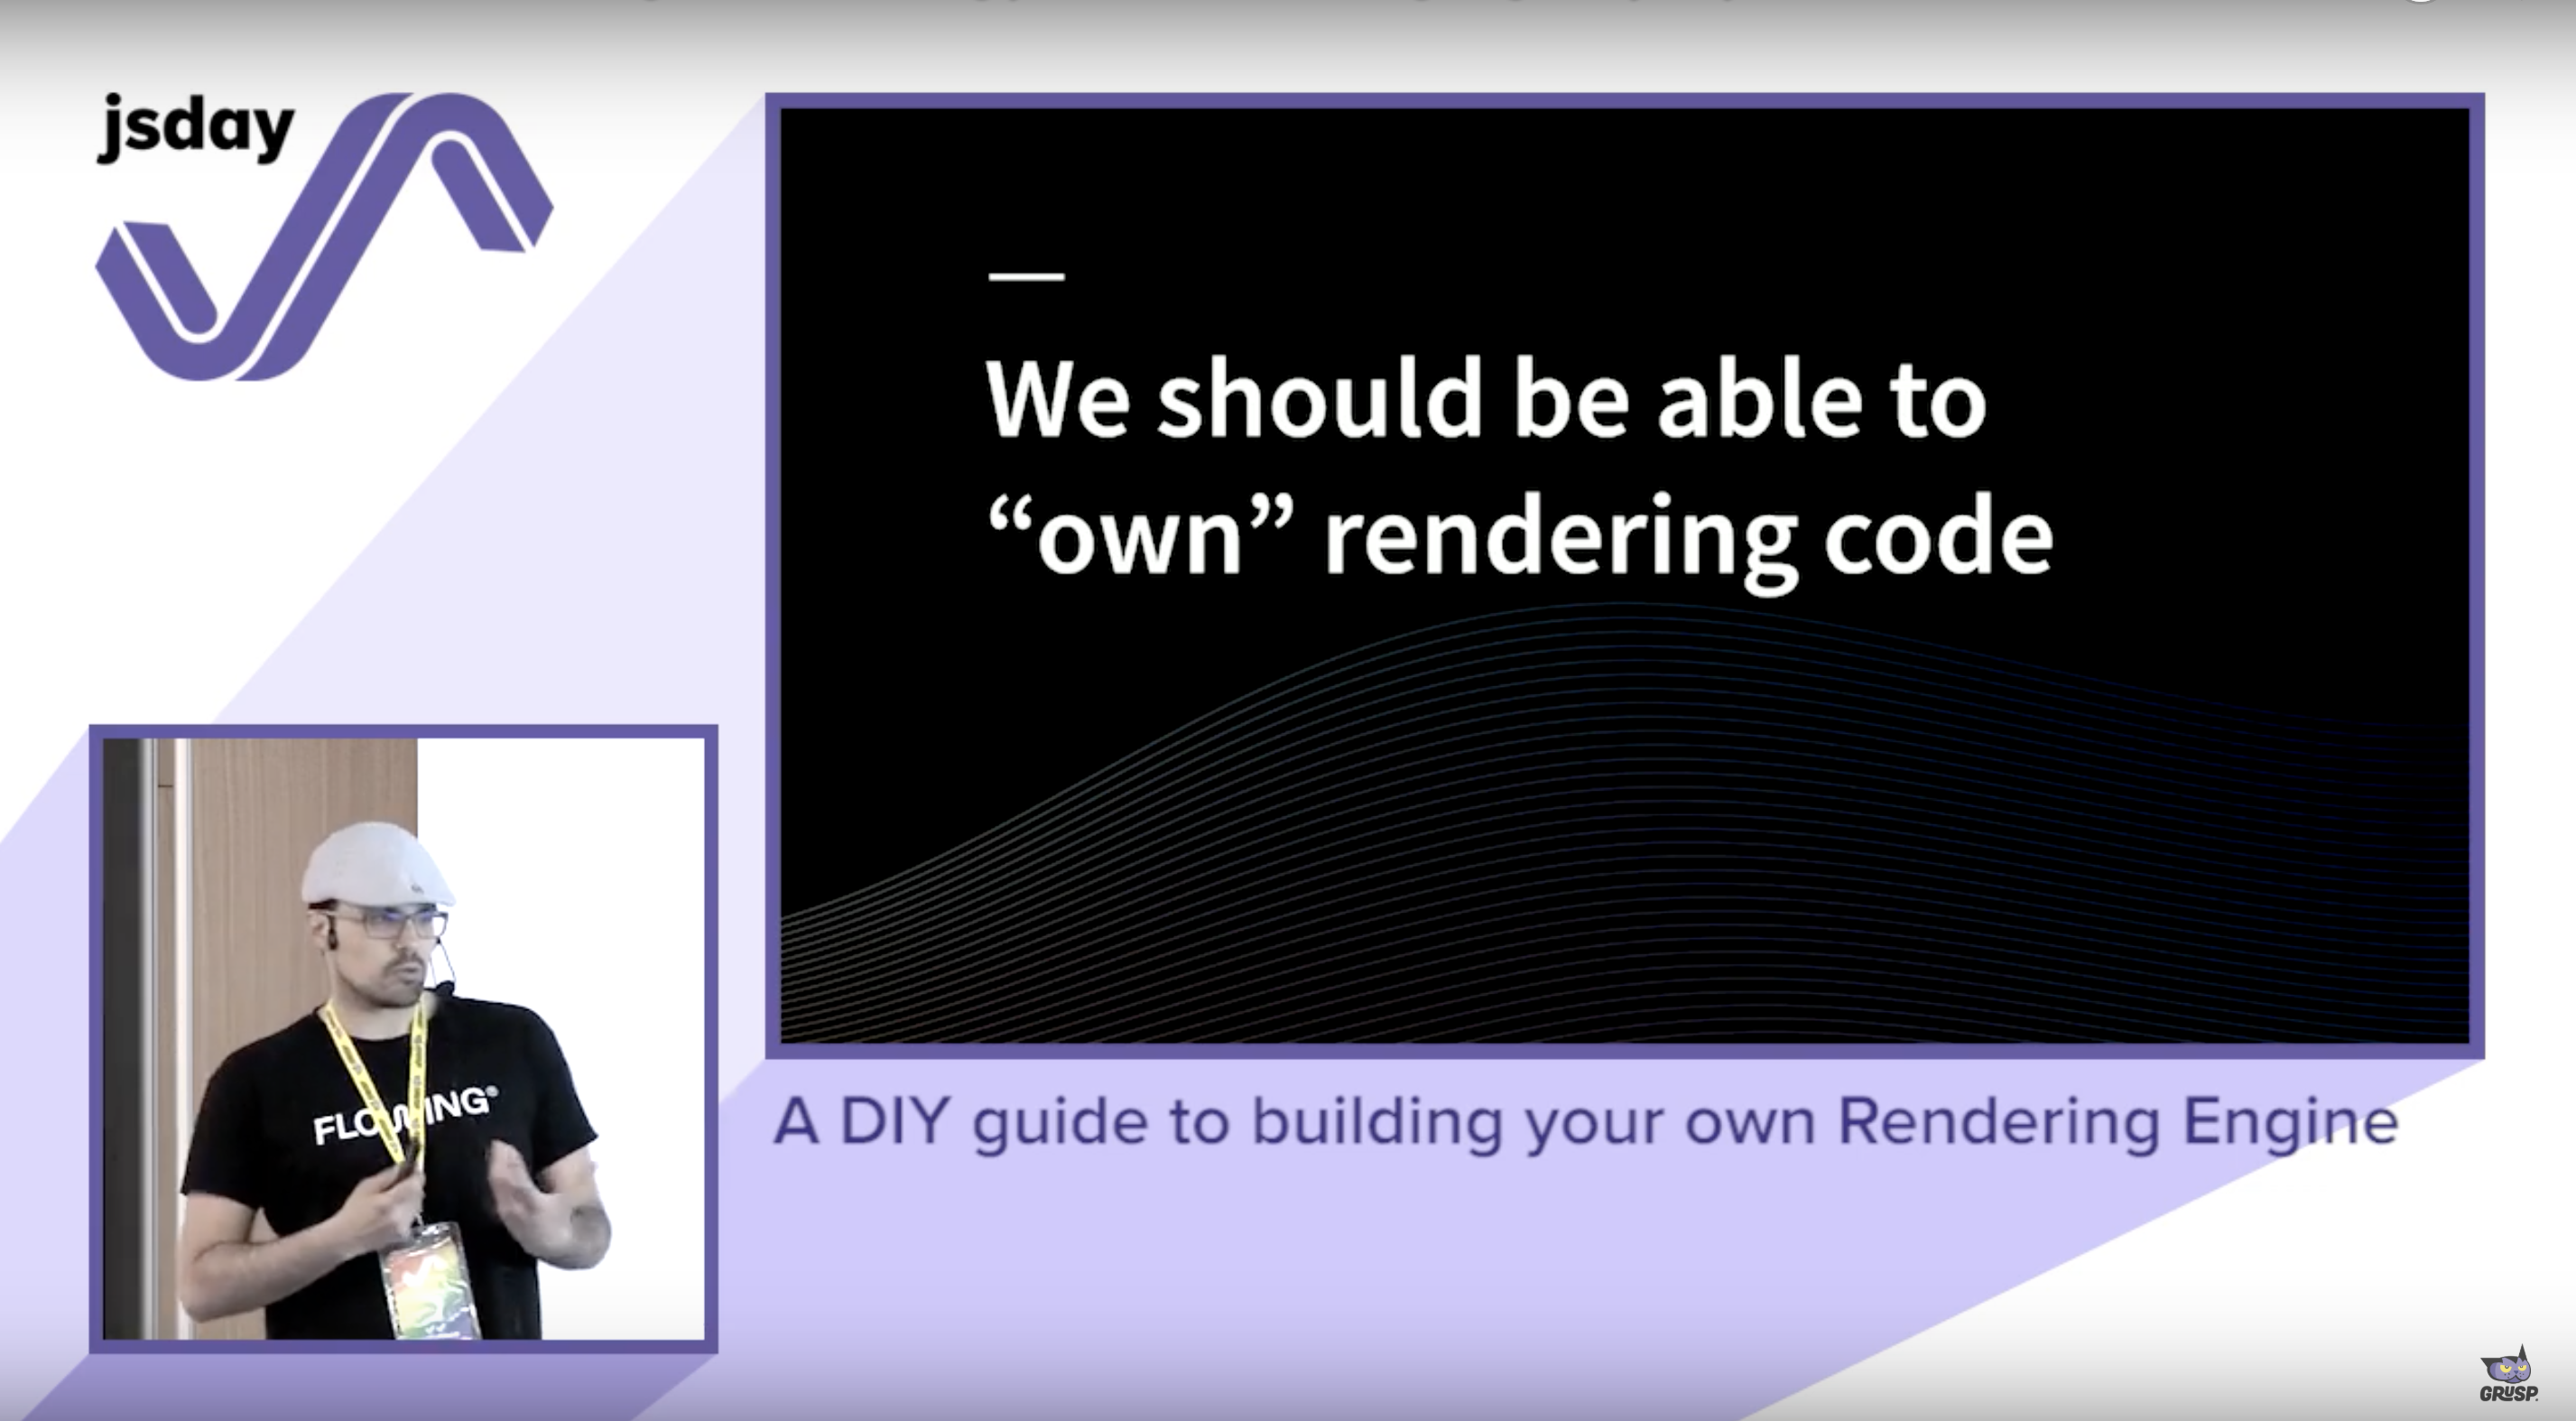 A DIY guide to building your own Rendering Engine